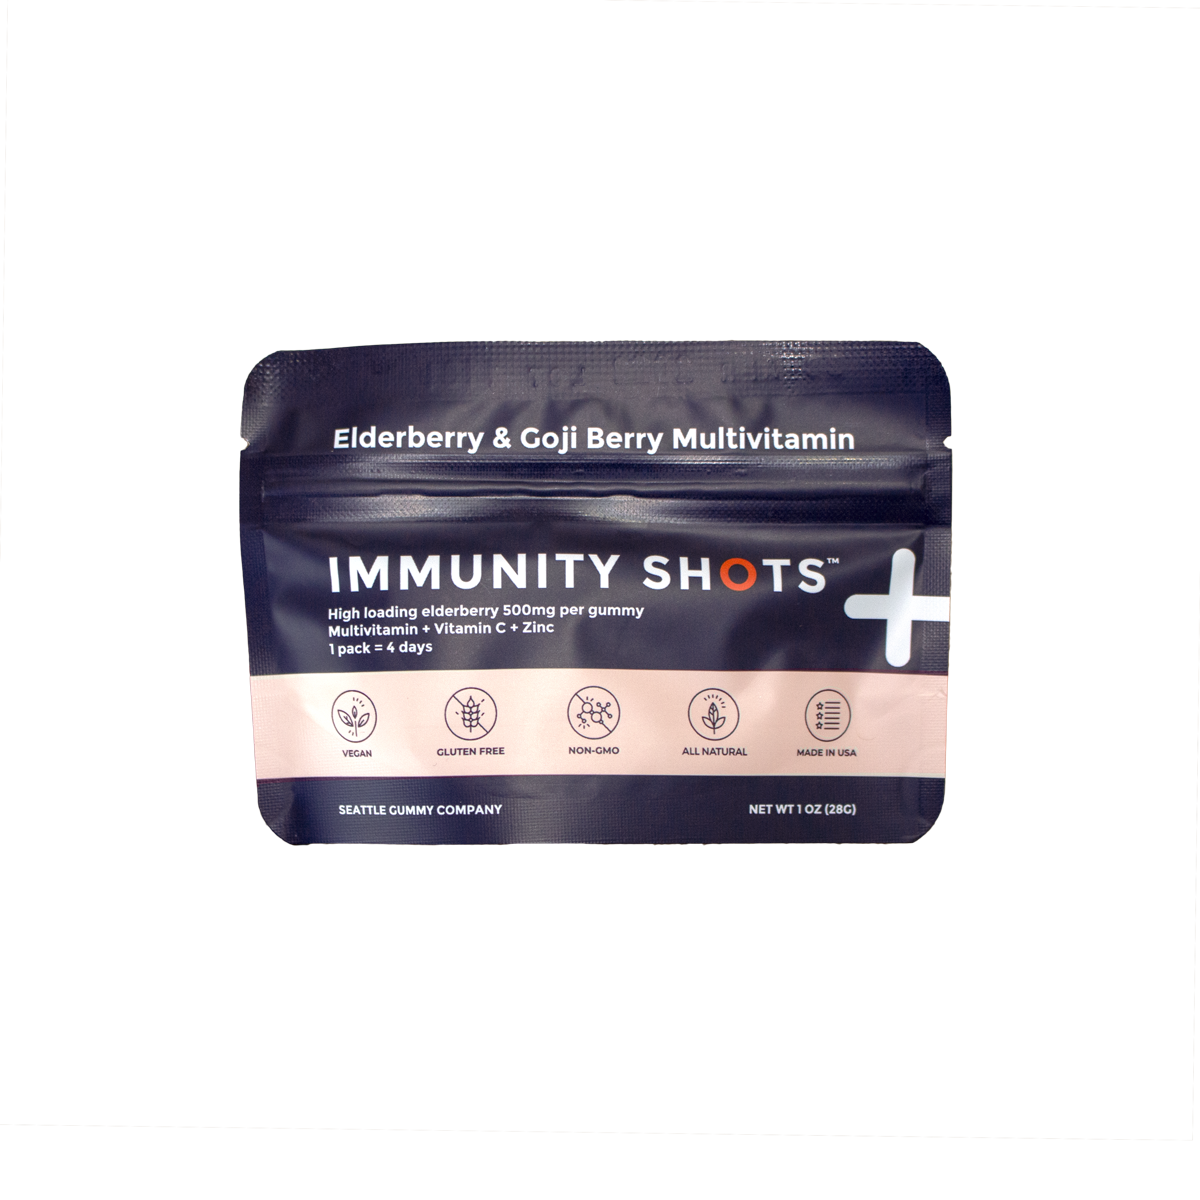 Immunity Shots Elderberry and Goji Berry Multivitamin (12 pack)